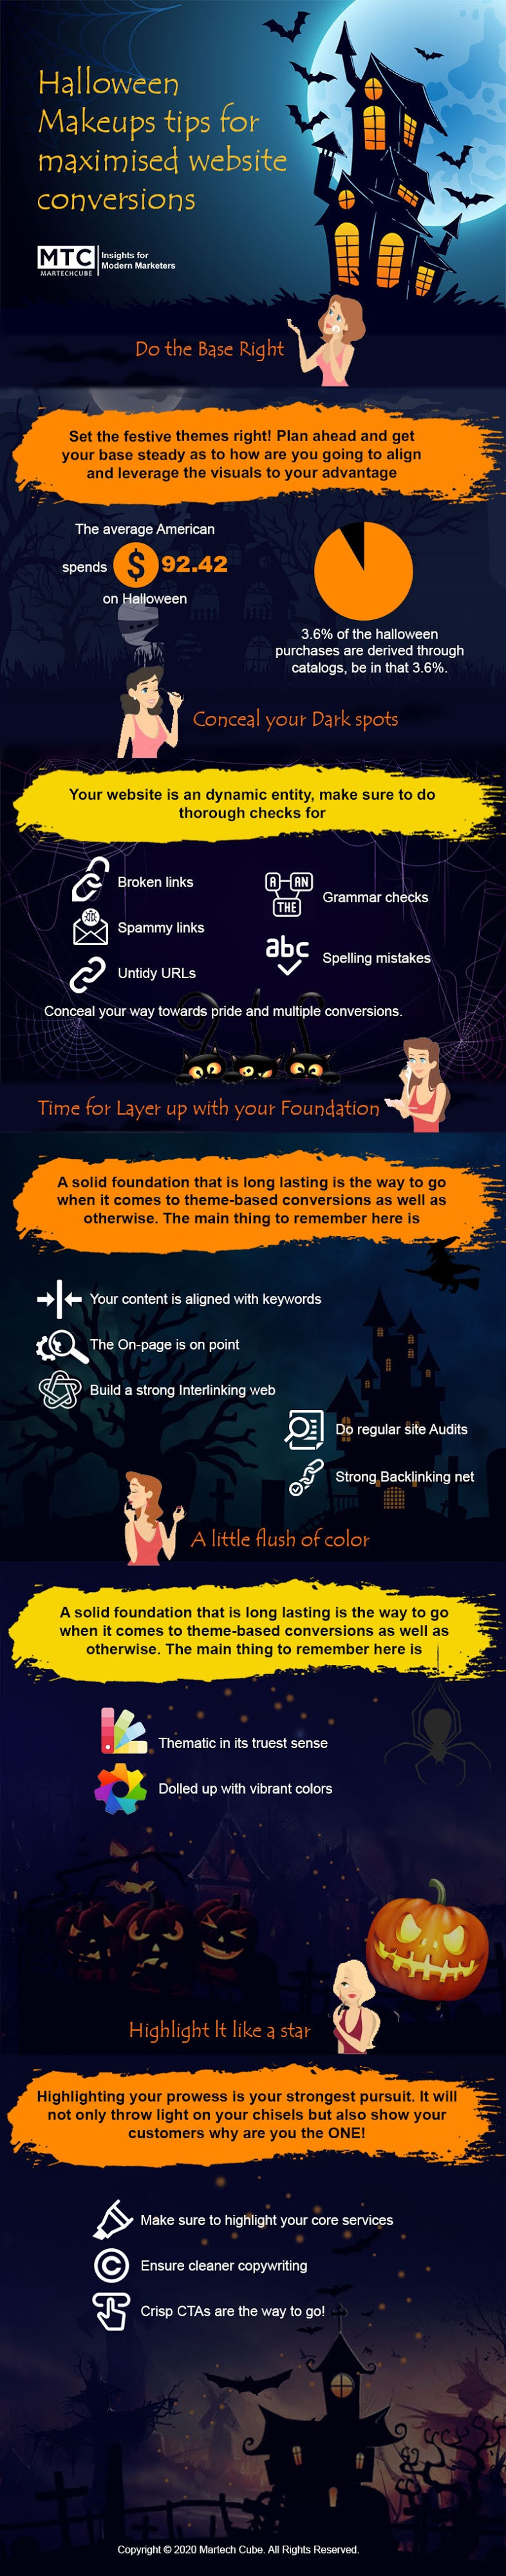 Halloween Makeup Tips for Maximized Website Conversions #infographic #Marketing #Halloween #Website Conversions